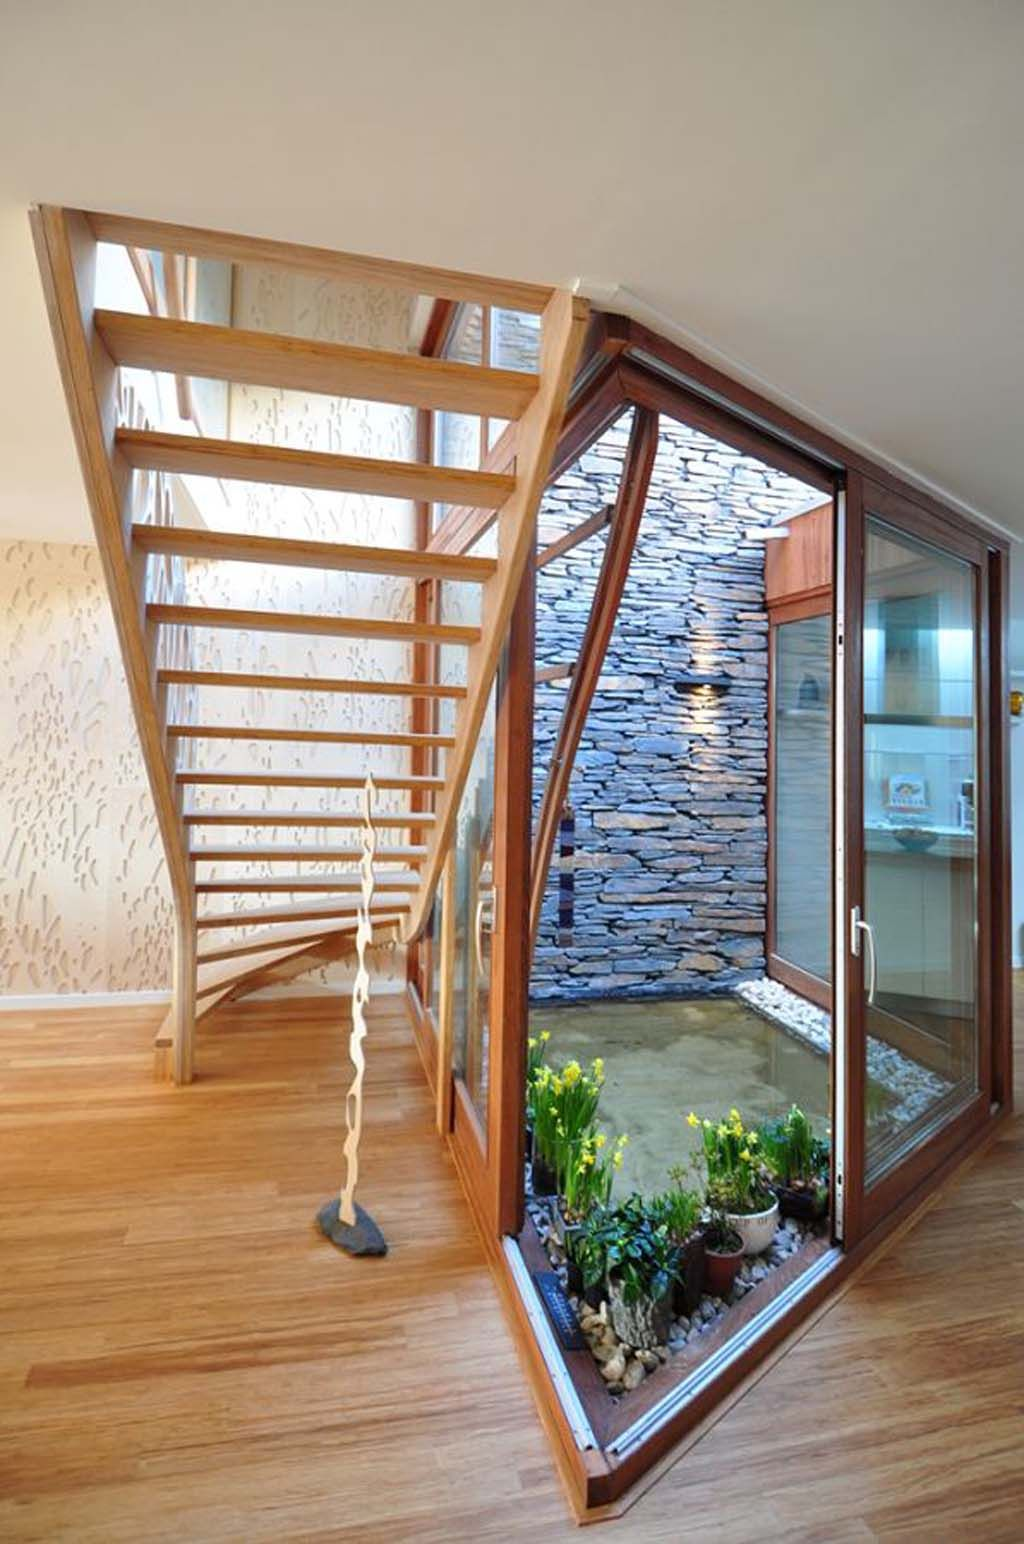 best ideas about eco friendly design ideas and homes on eco home design - Eco Home Design